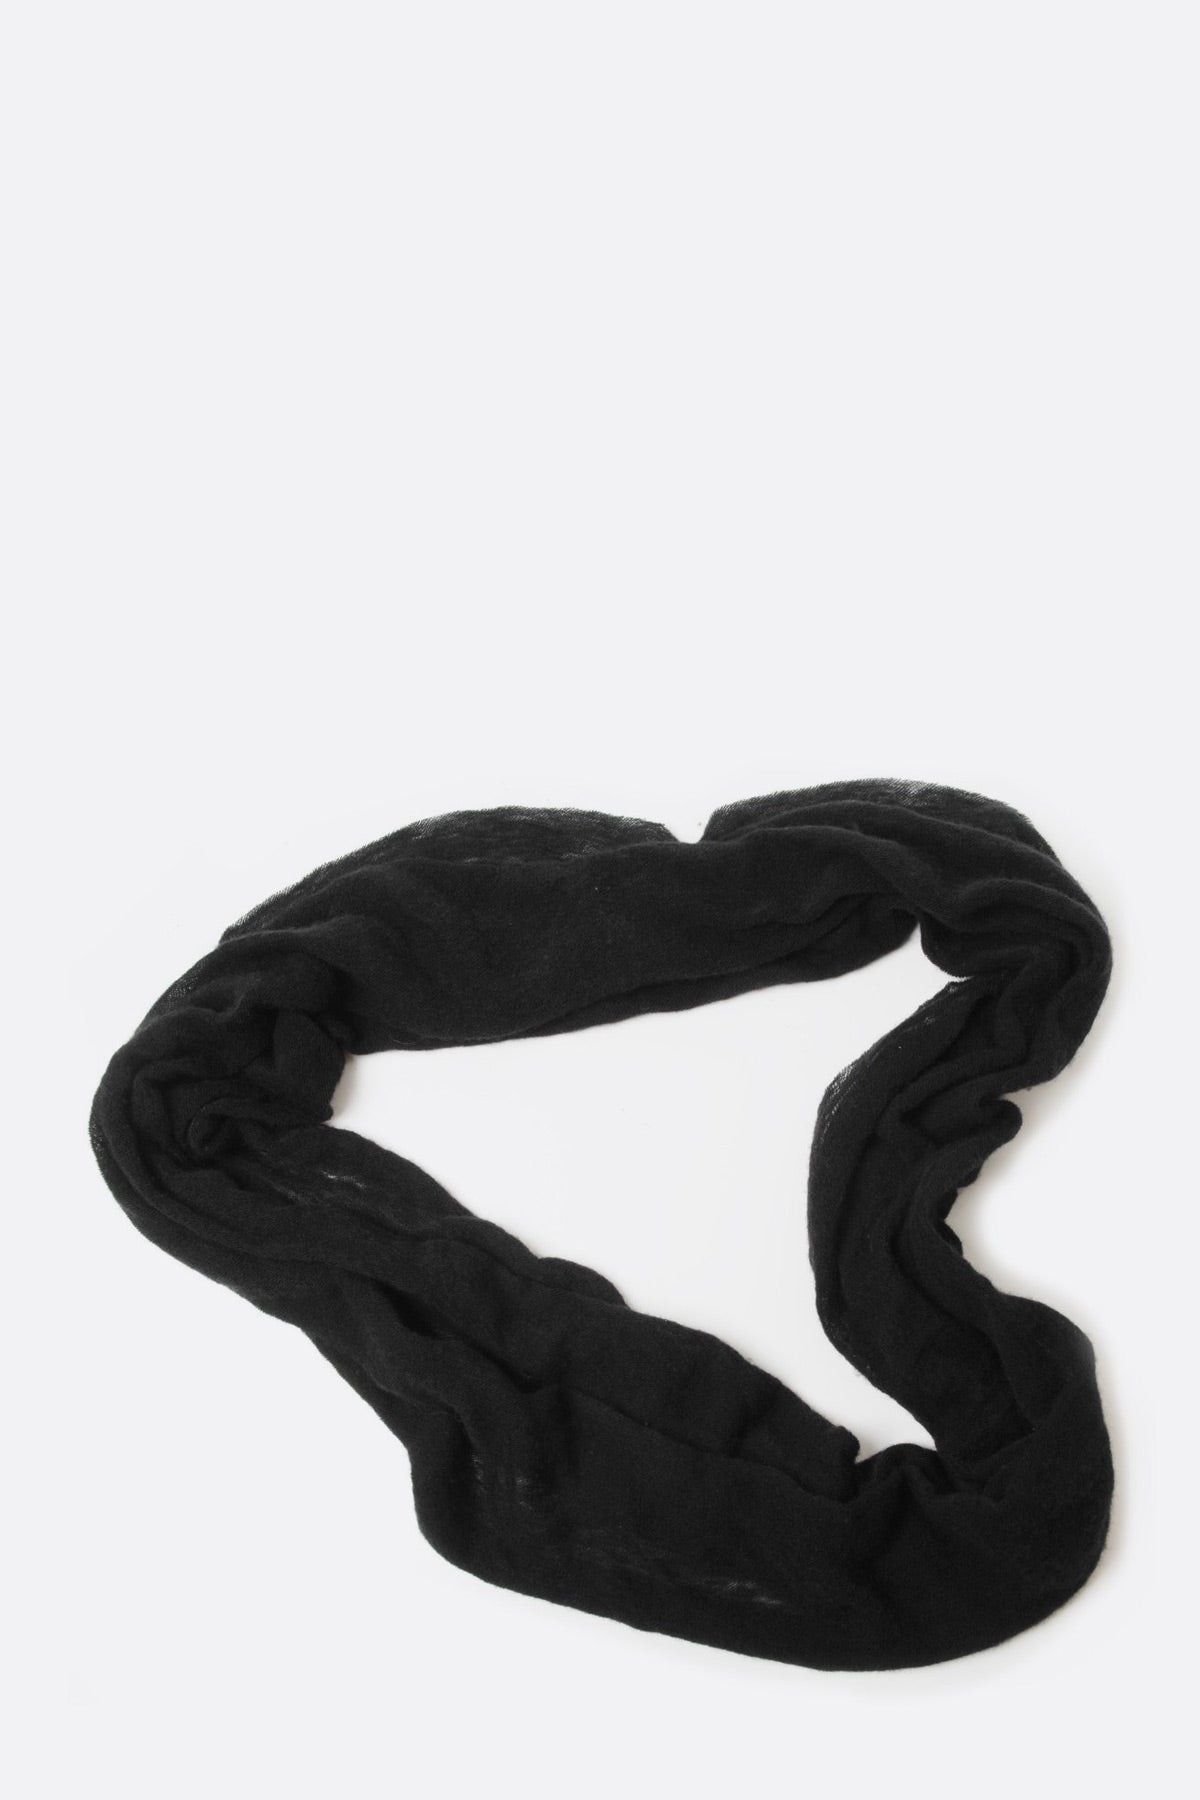 Black Cashmere Tube Scarf by Botto Giuseppe